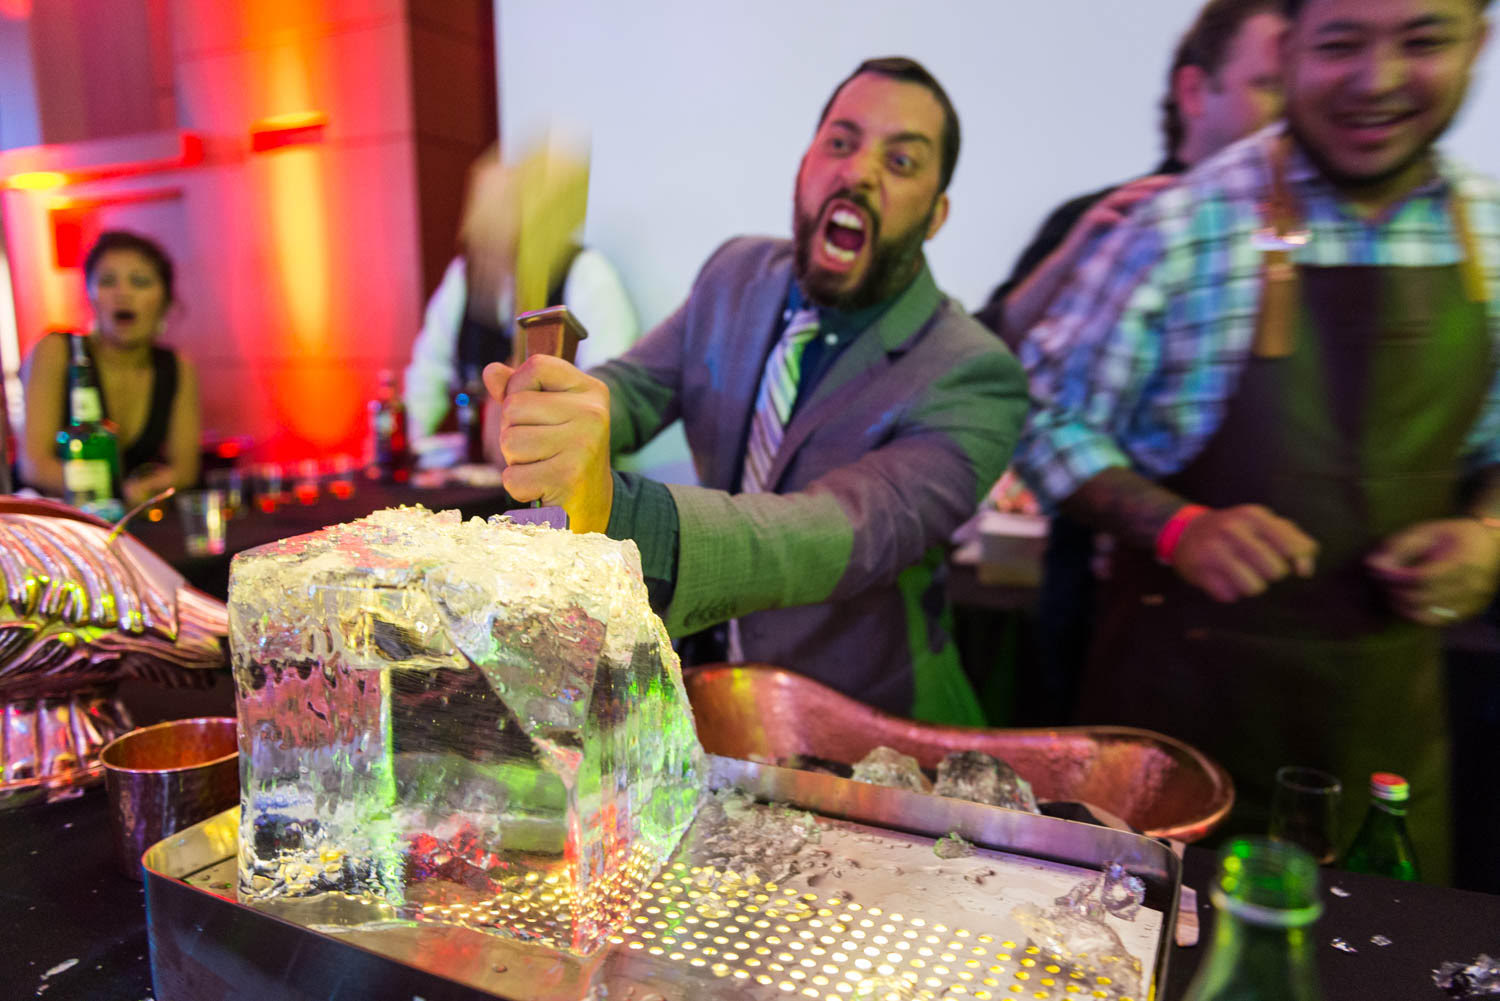 Ice chipping at work at the 2016 Rammy awards